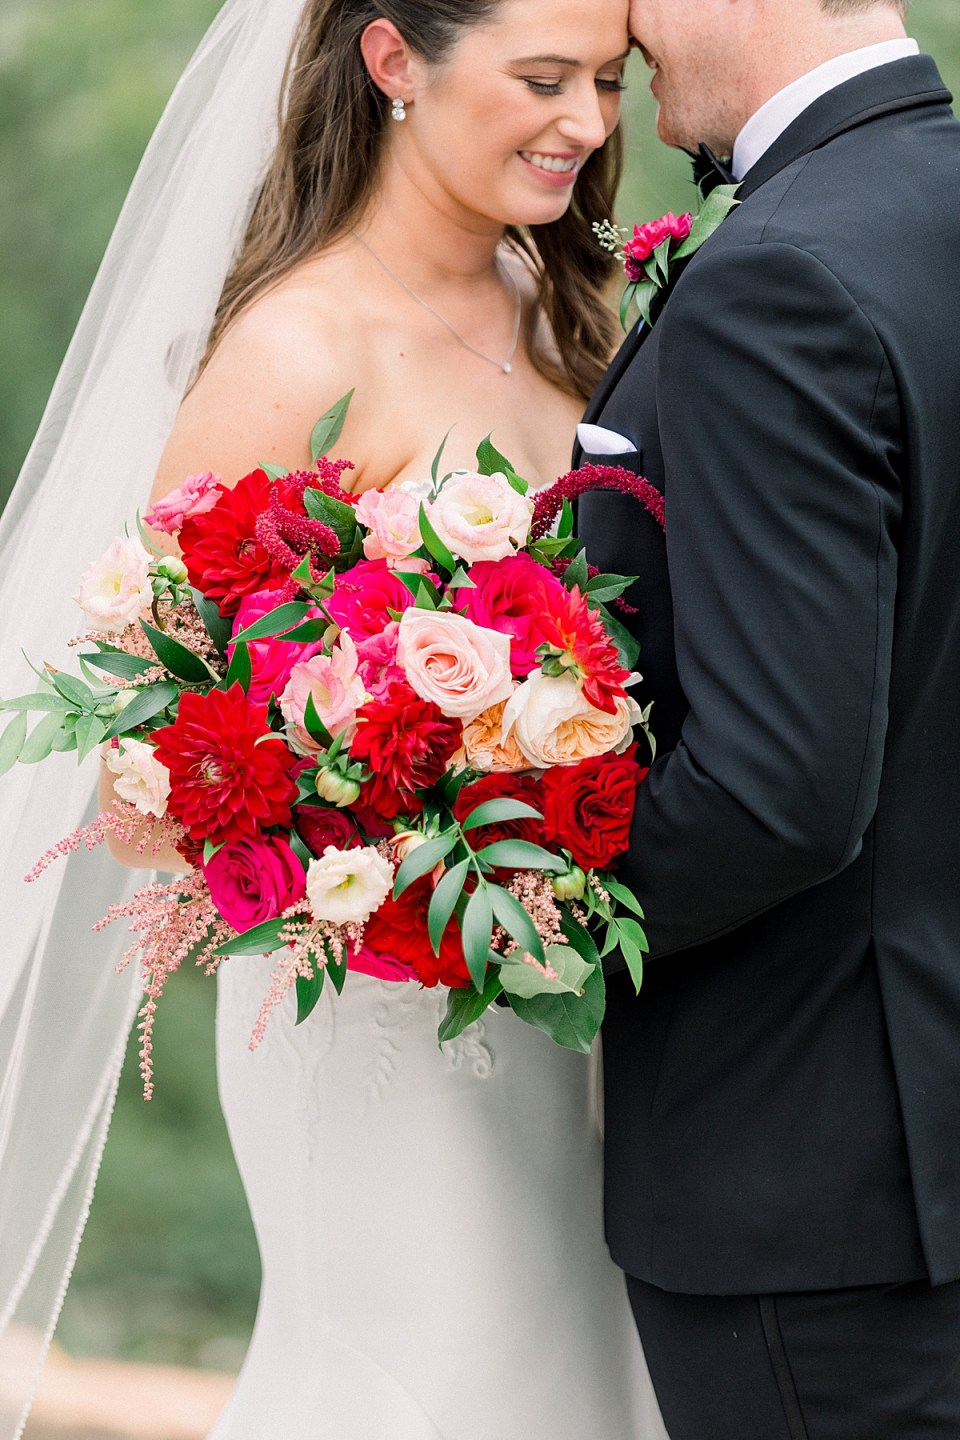 Bride and groom nuzzle with red and pink bridal bouquet